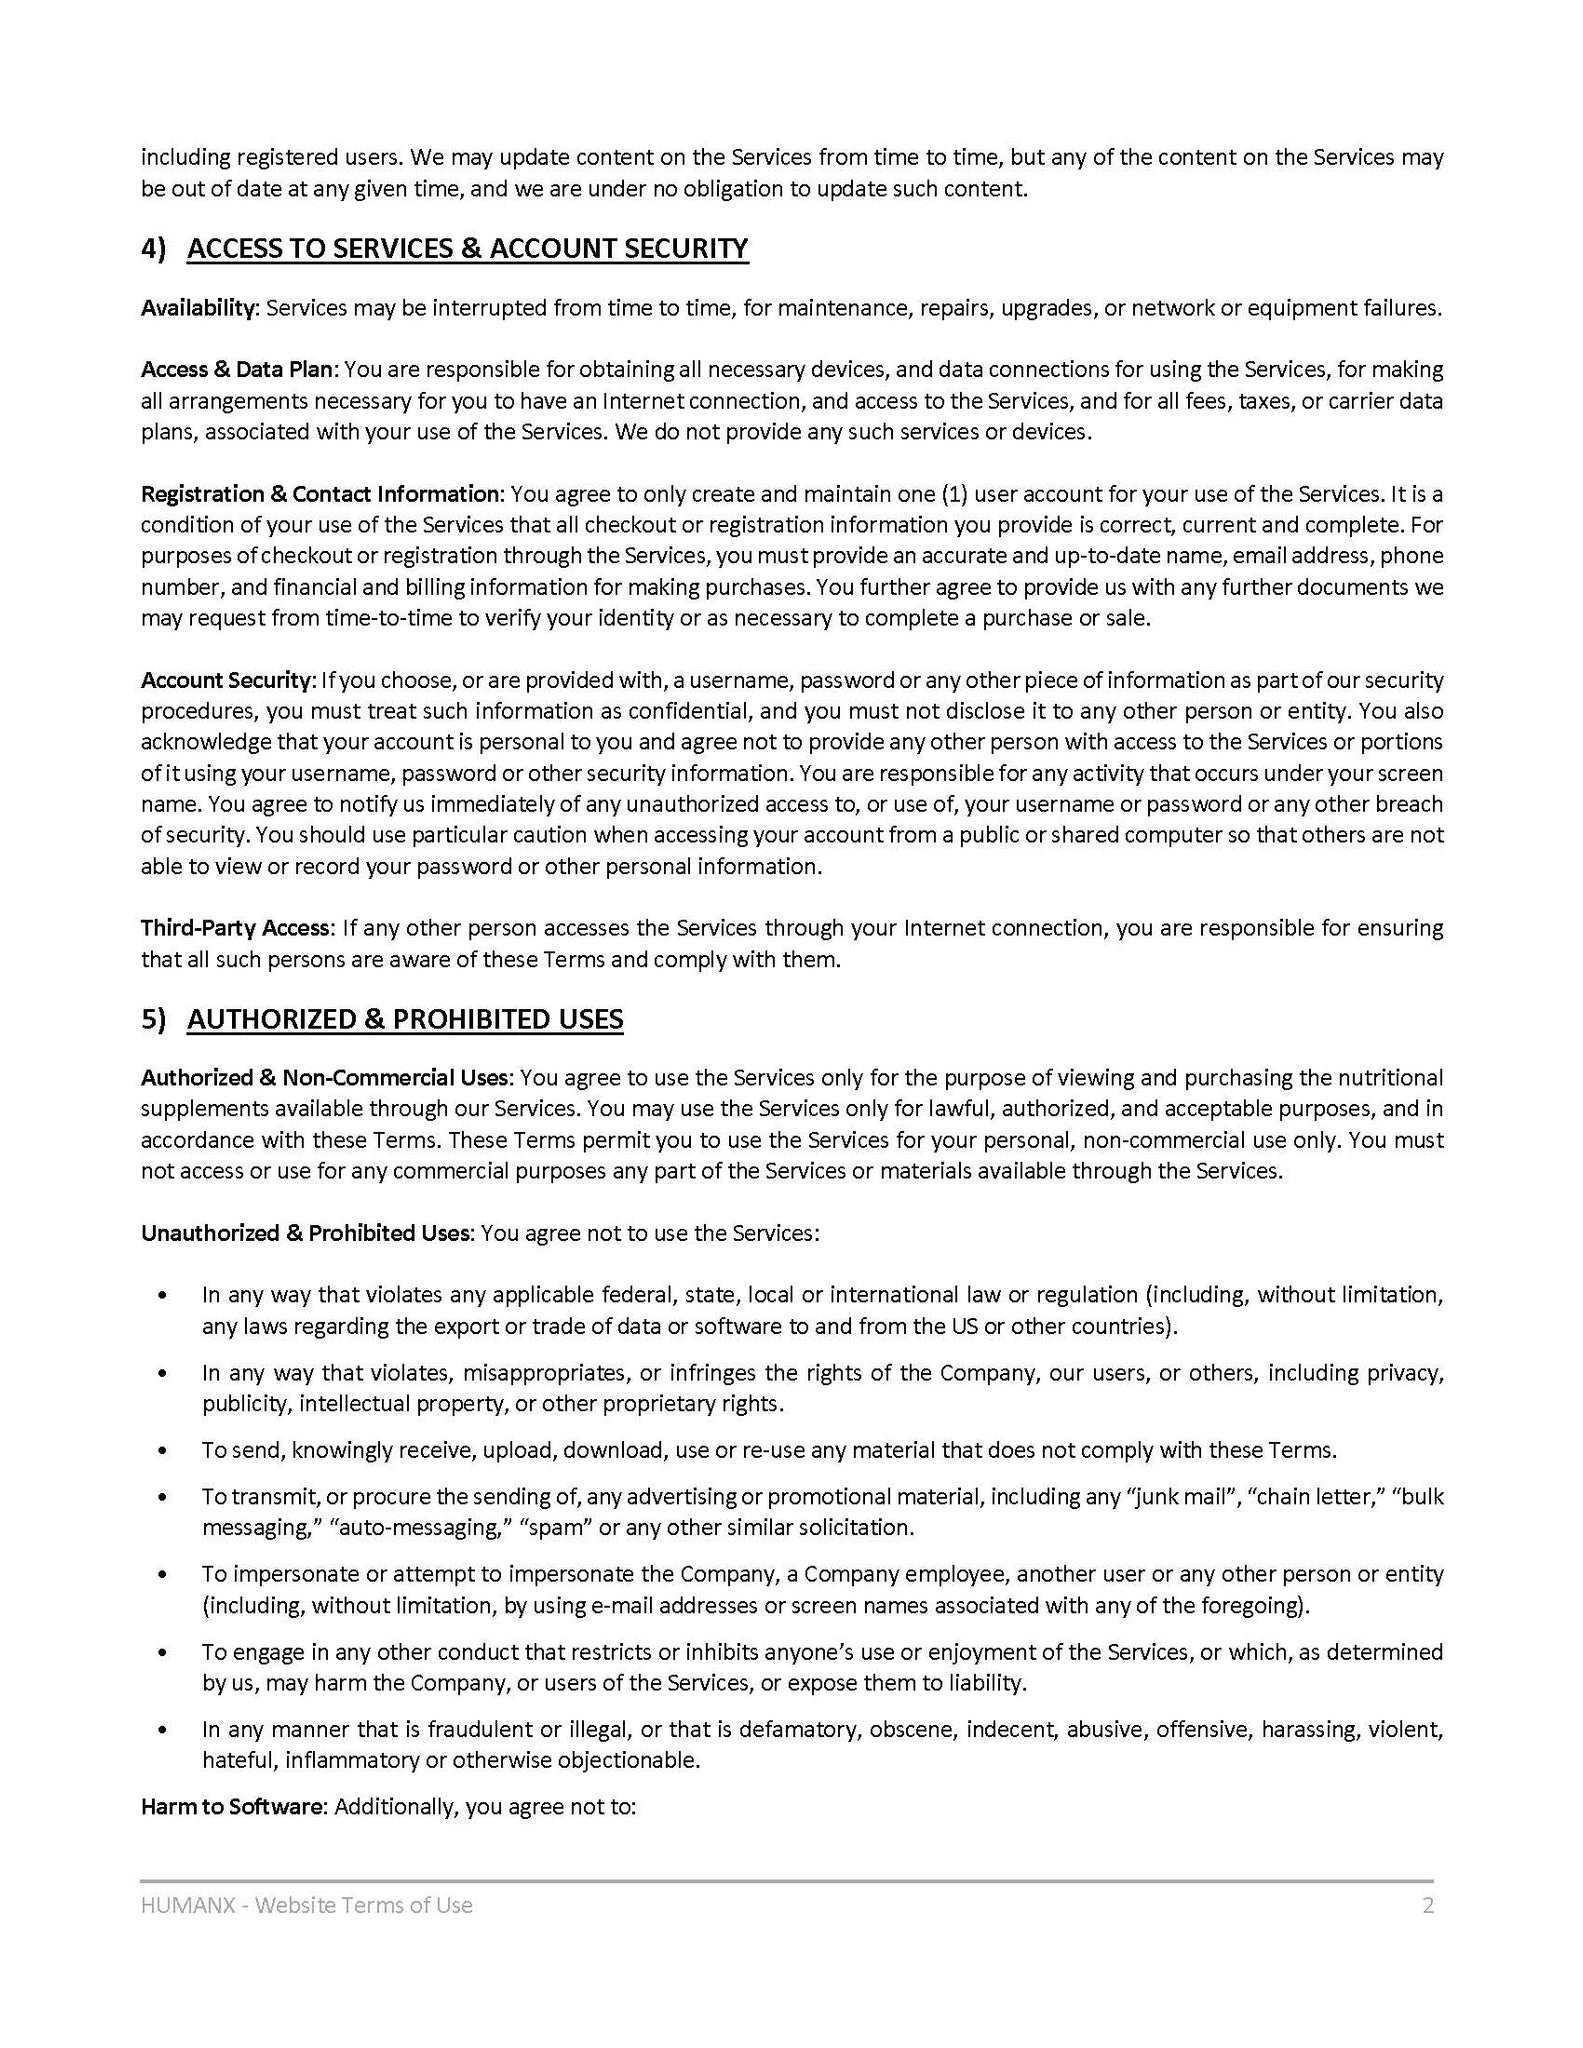 Terms of Use - Page 2